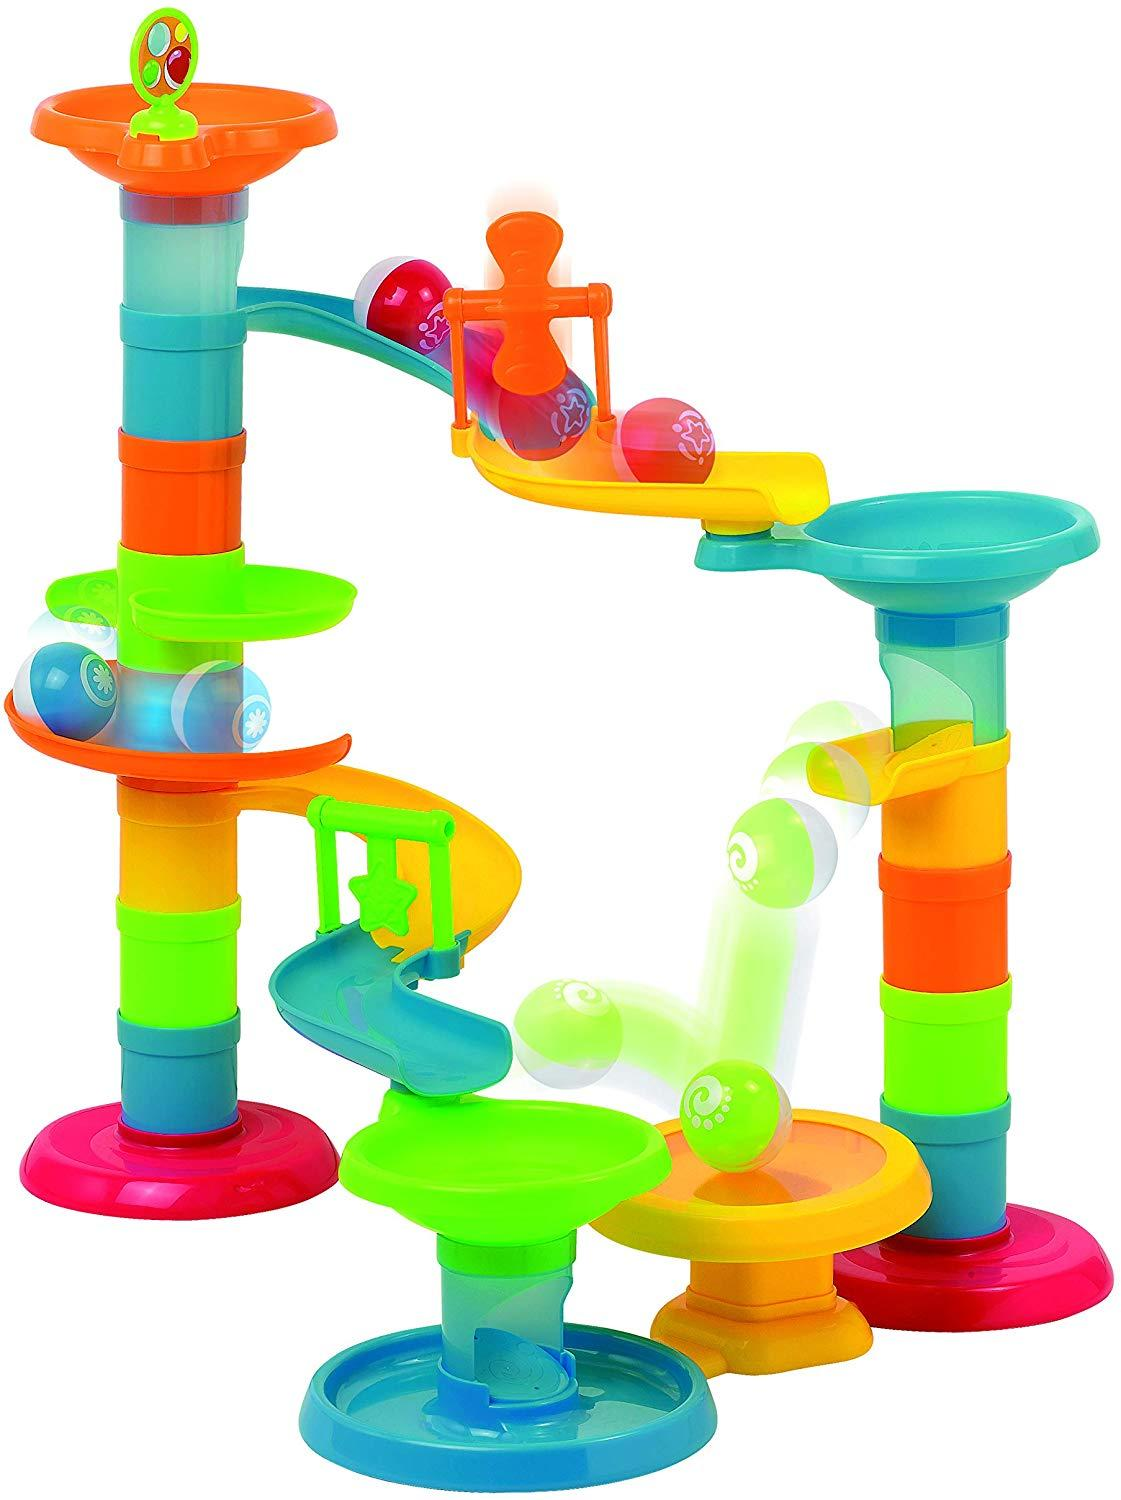 Bounce A Marble Racetrack